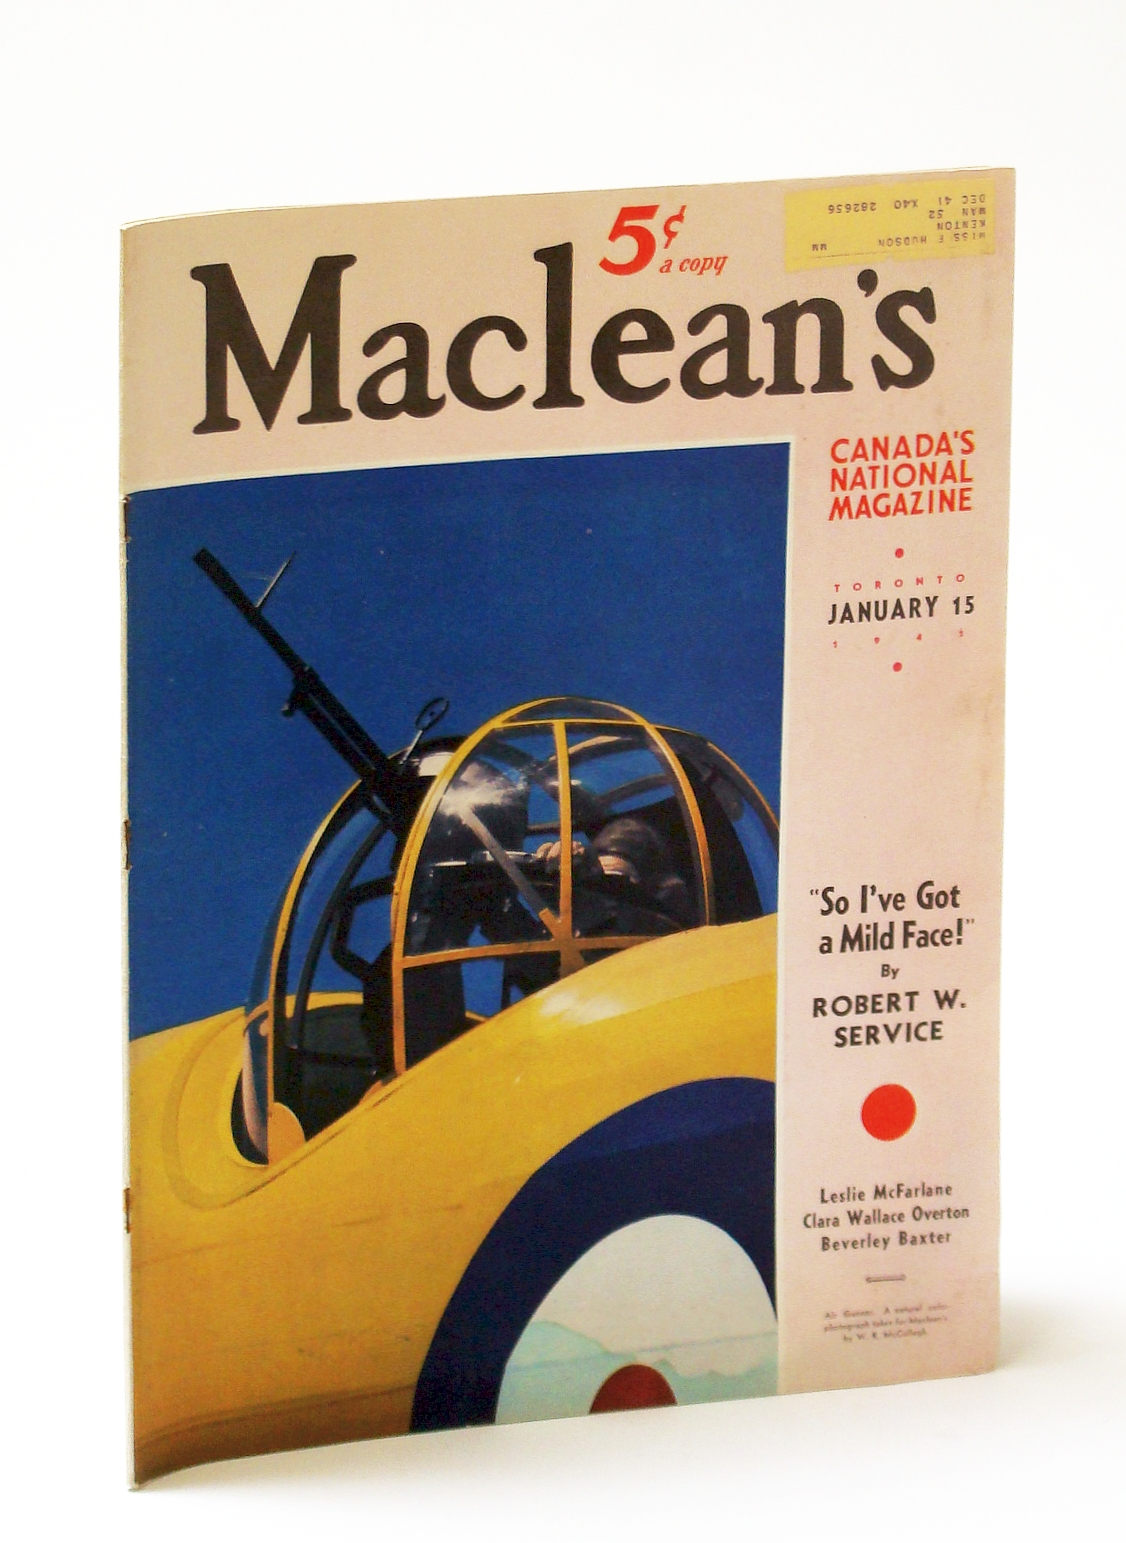 Image for Maclean's, Canada's National Magazine, January (Jan.) 15, 1941, Vol. 54, No. 2 - Robert W. Service